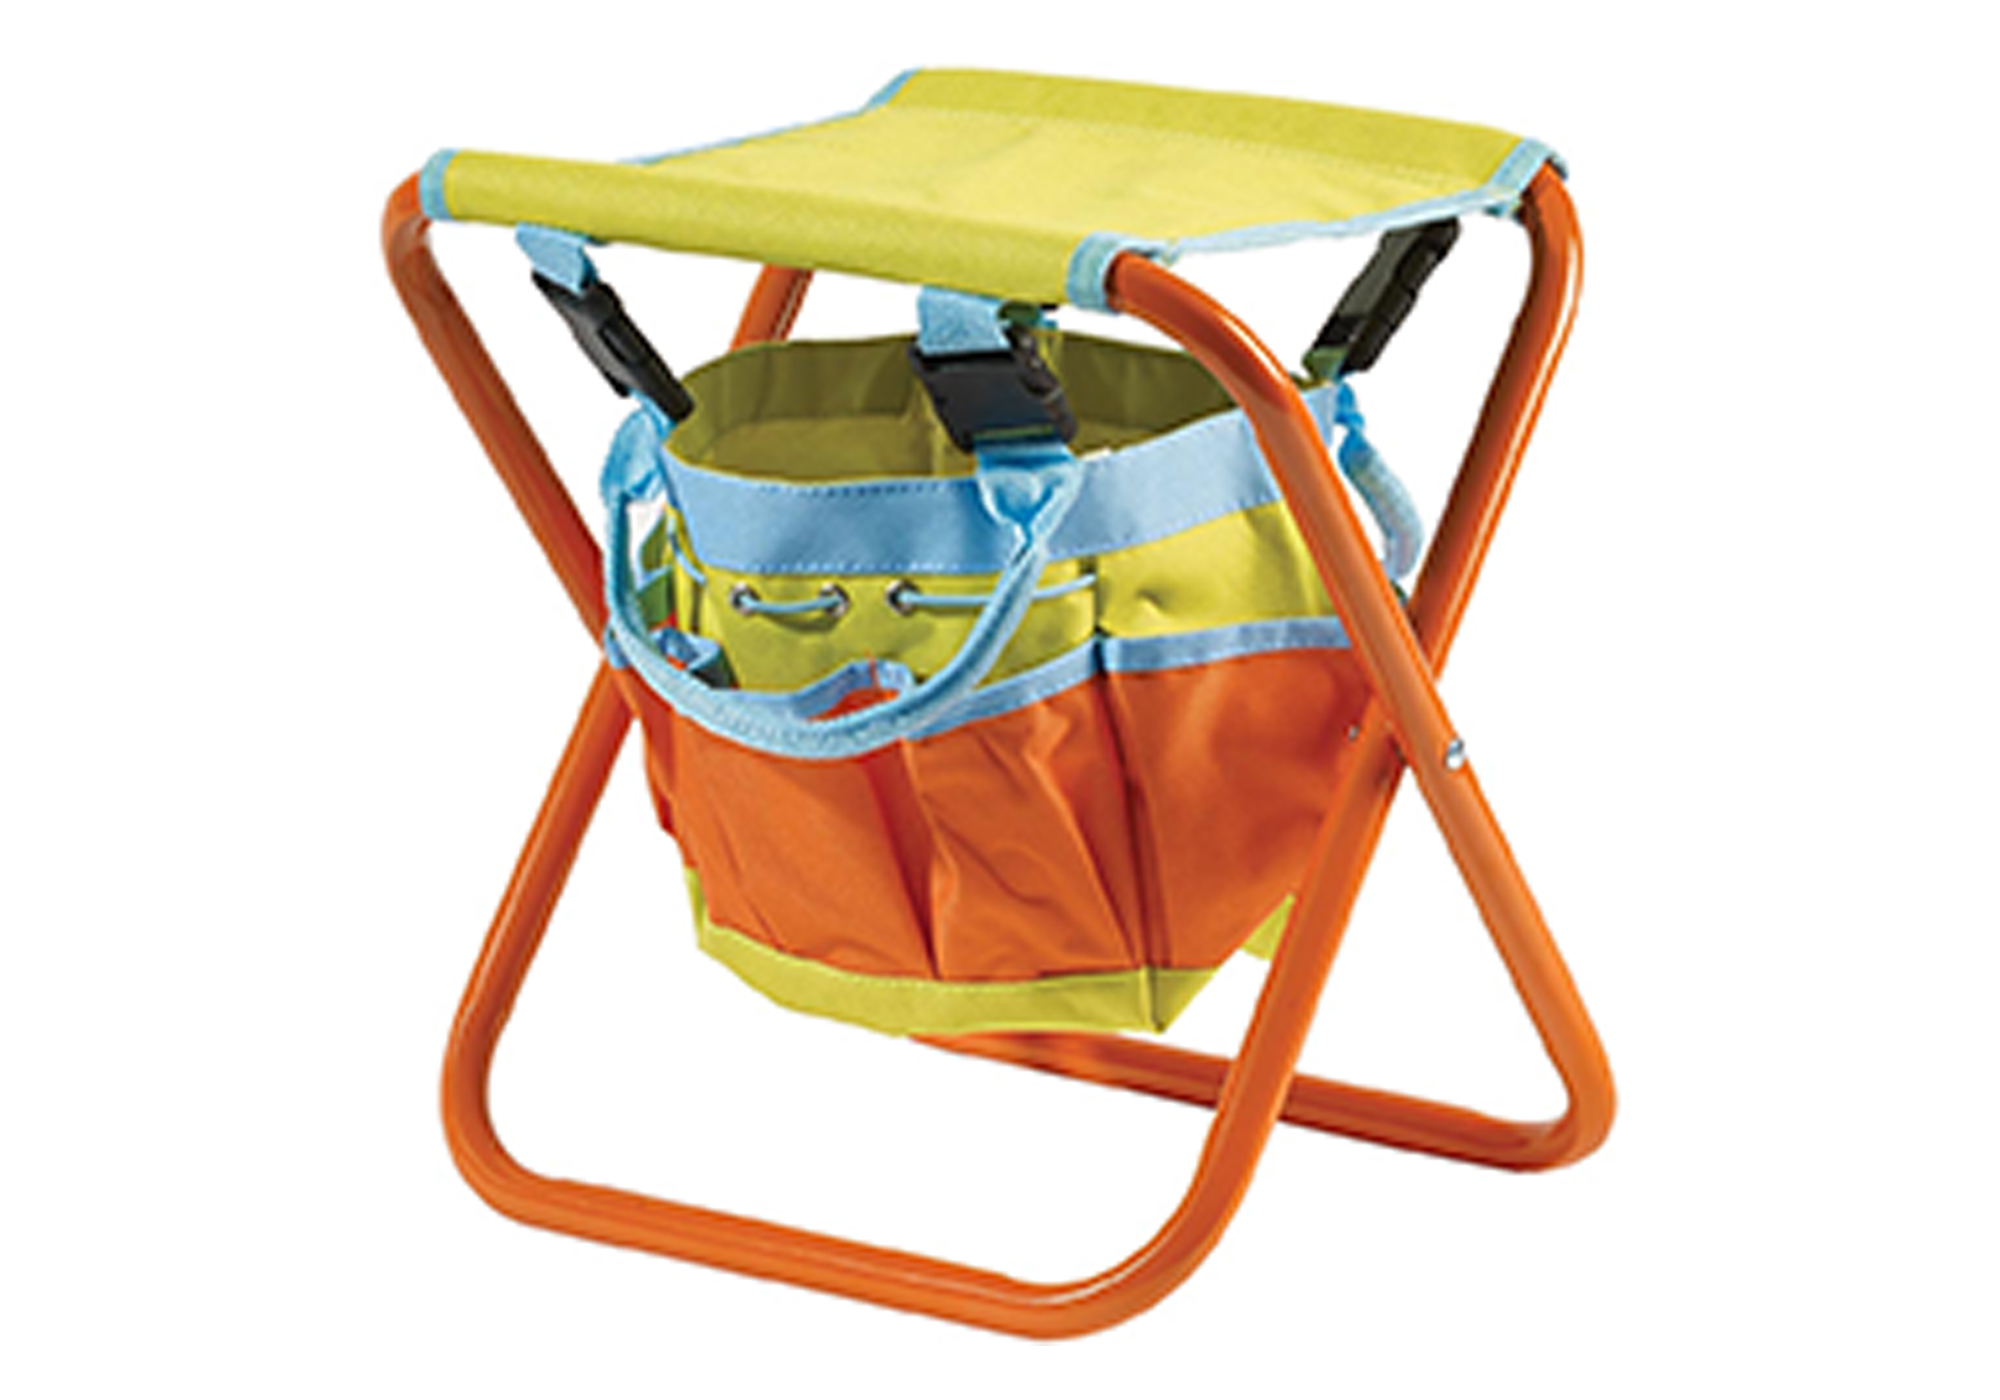 Kids Folding Stool w/ Storage